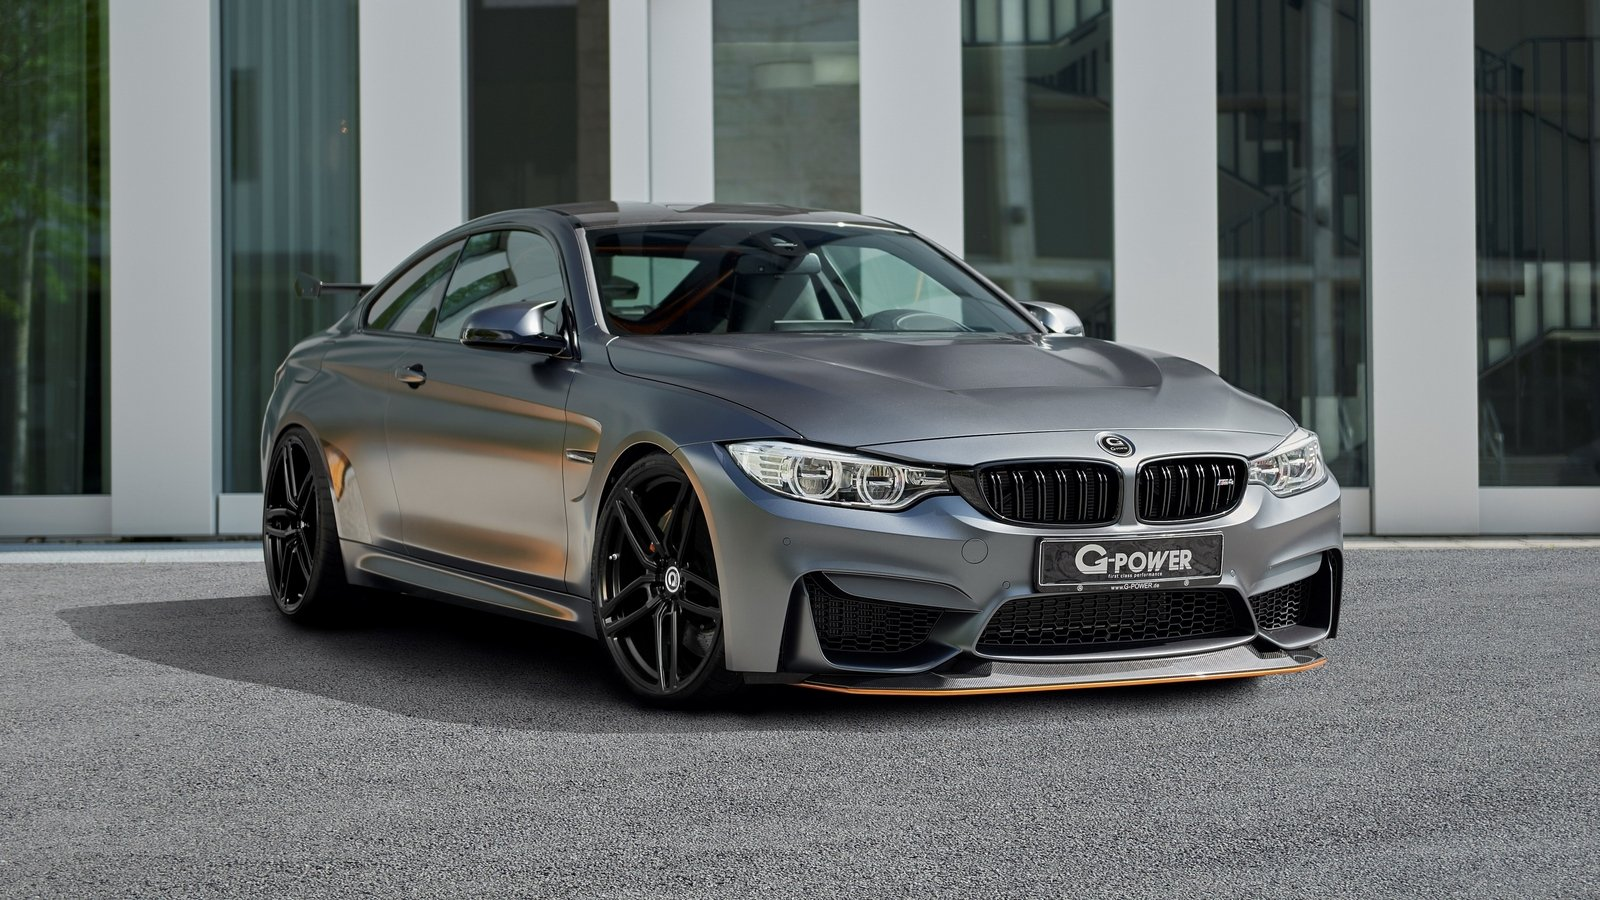 2016 bmw m4 gts by g power review top speed. Black Bedroom Furniture Sets. Home Design Ideas